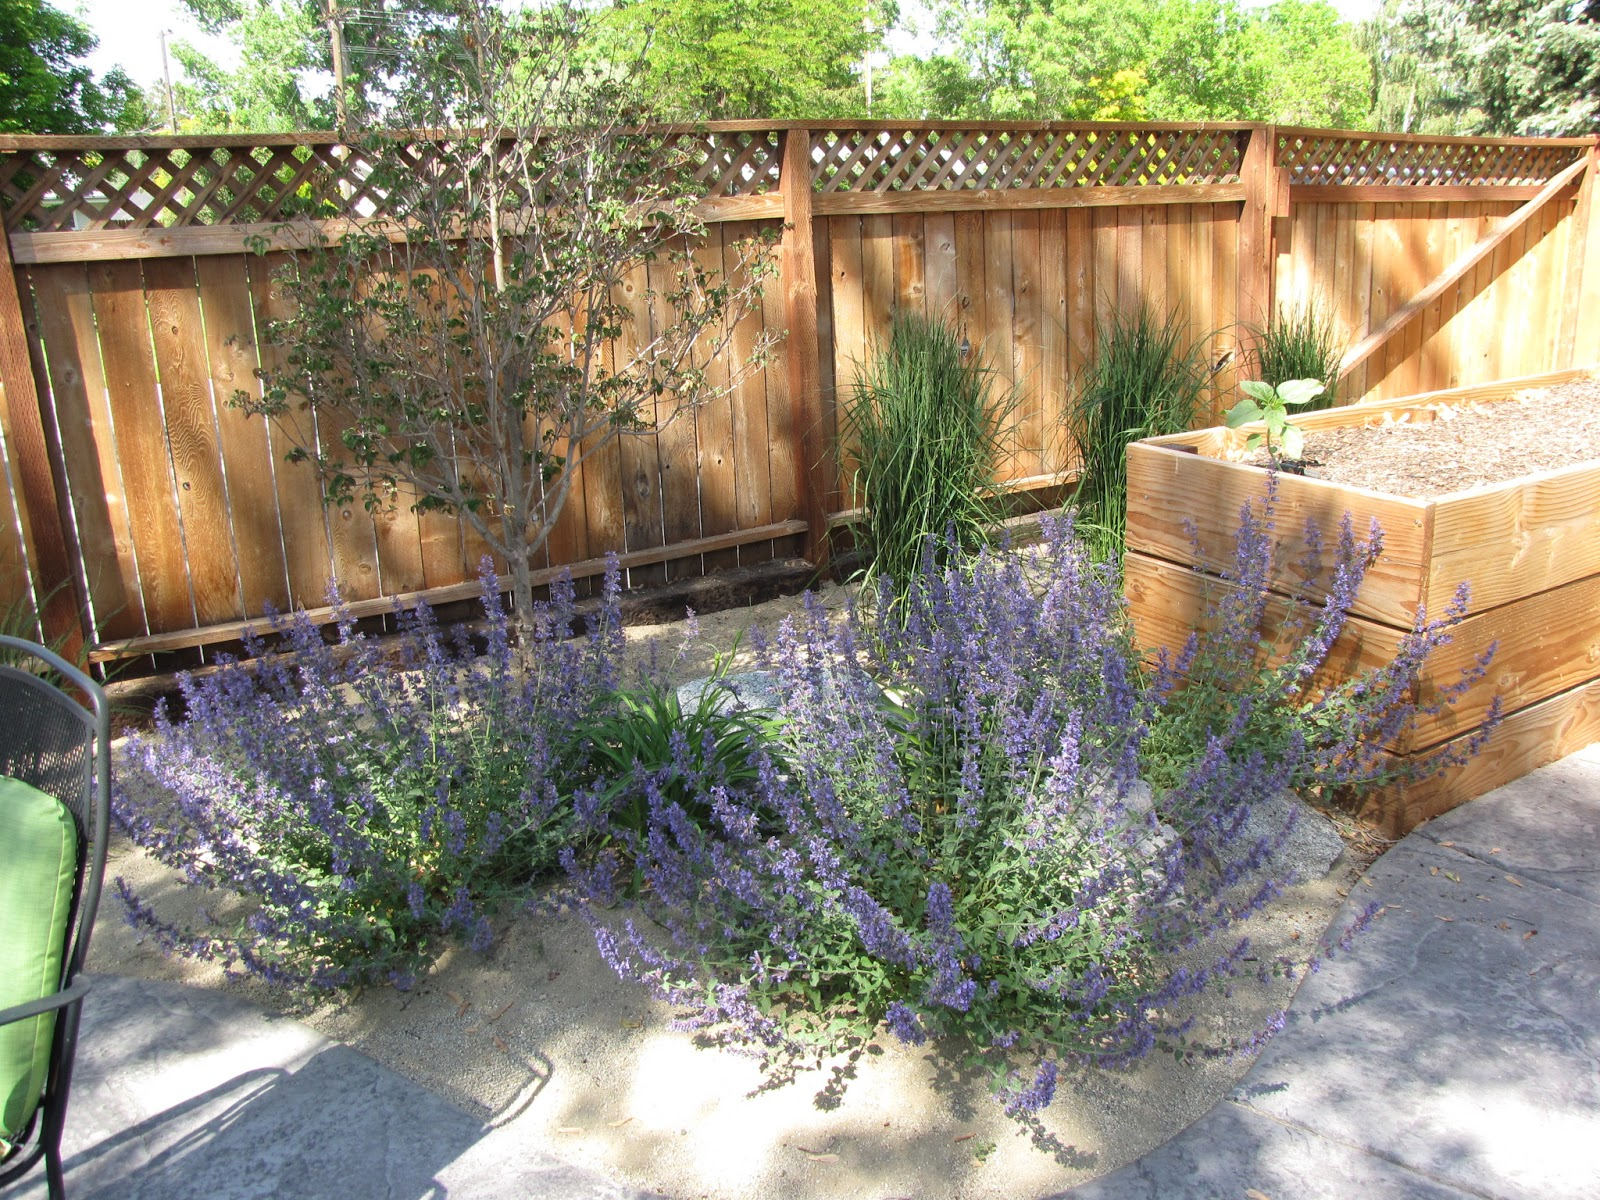 The Art of Landscaping: Dog-Friendly Landscaping